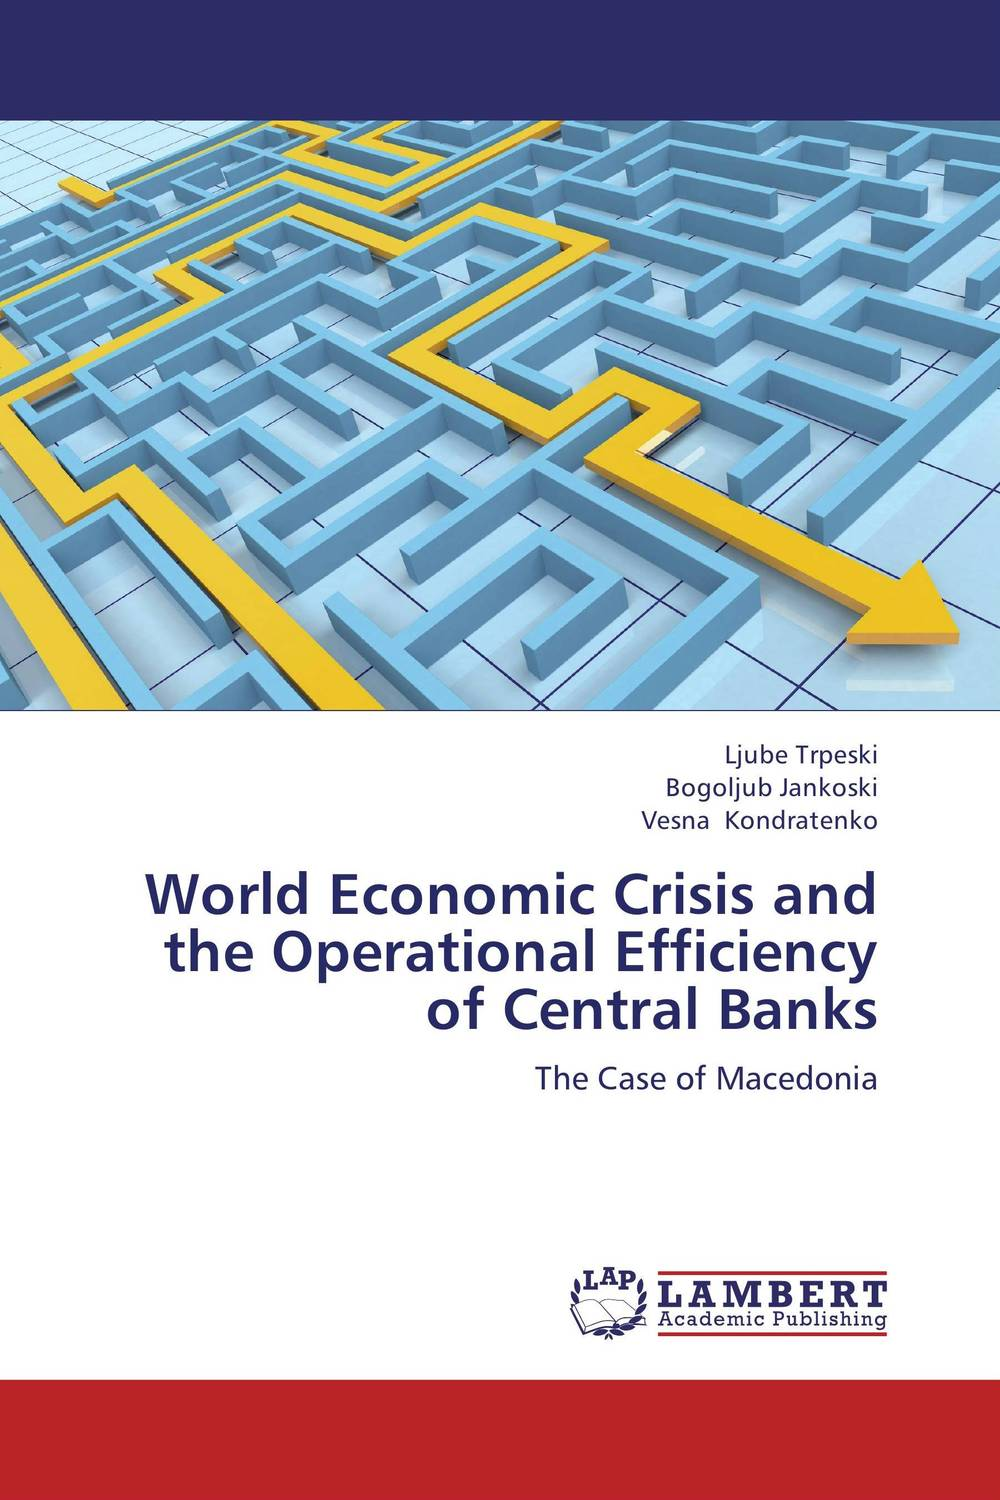 купить World Economic Crisis and the Operational Efficiency of Central Banks недорого